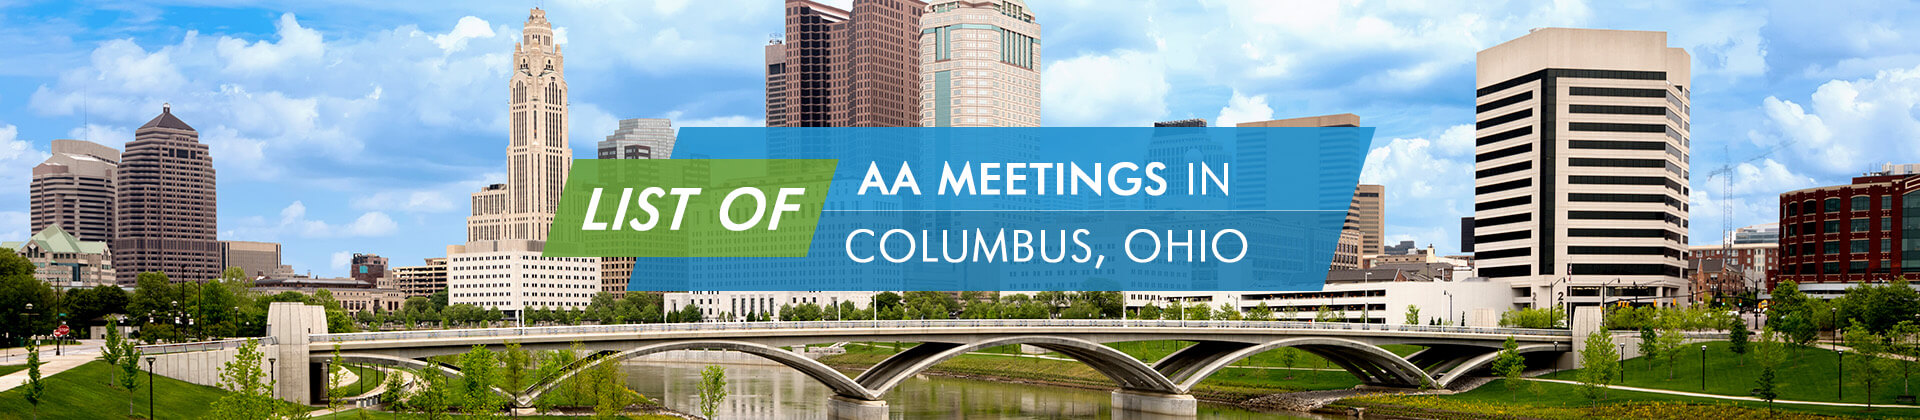 AA Meetings Columbus Ohio